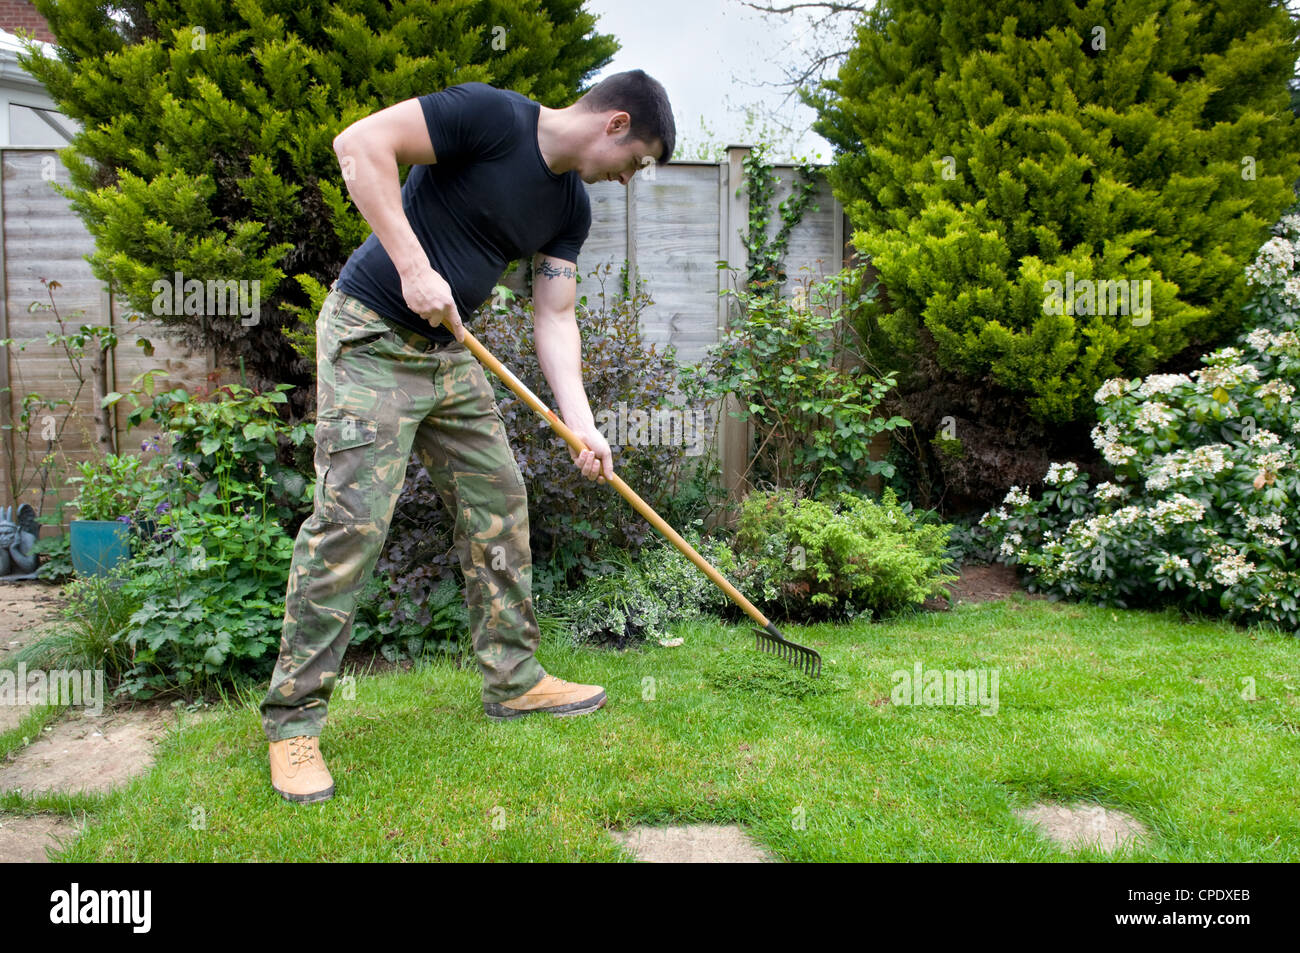 Young Caucasian man raking cut grass in garden in Bristol, UK - Stock Image